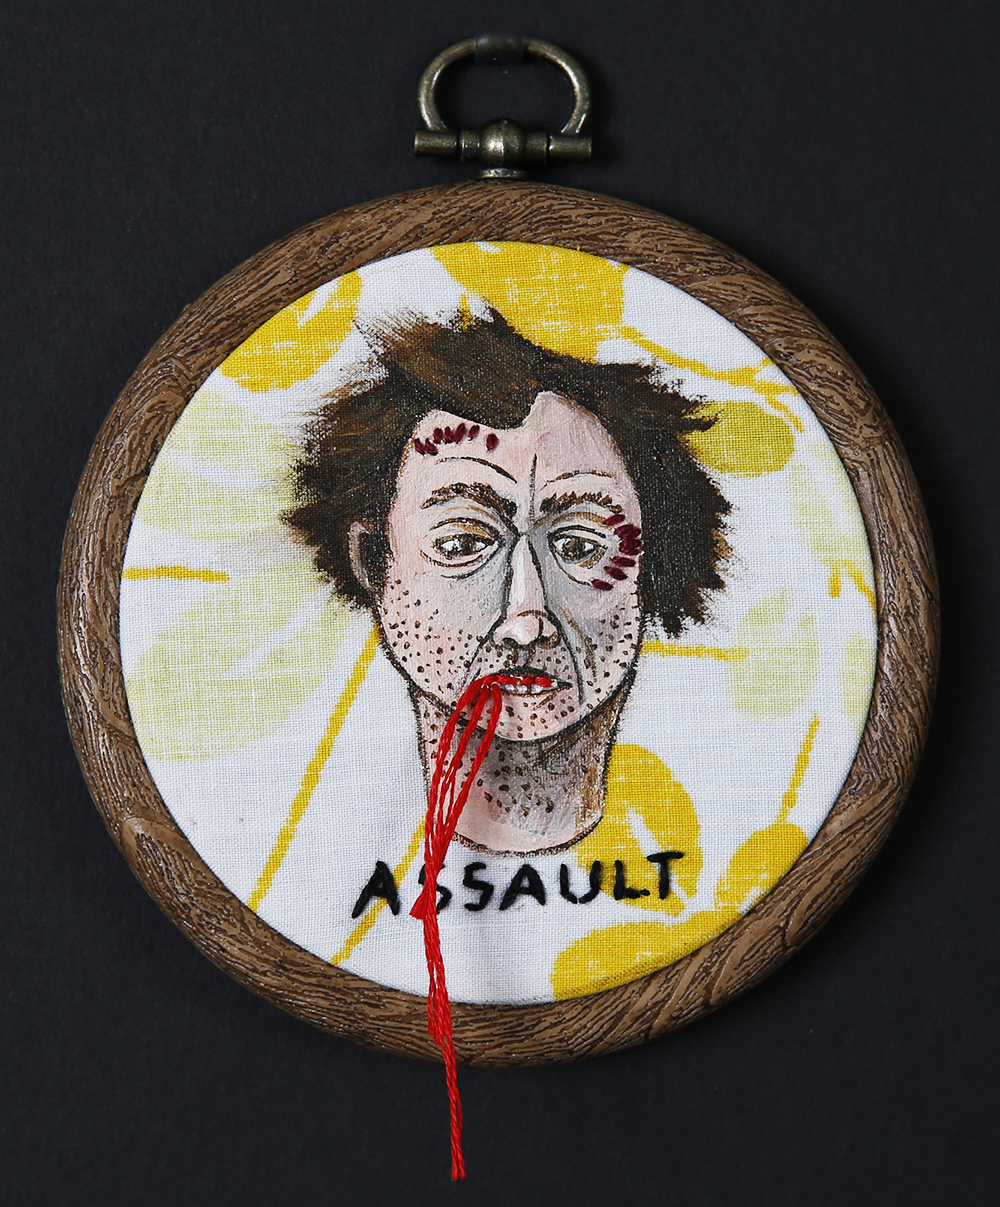 Assault - Busted Mugshot Artwork by Ashley Anson